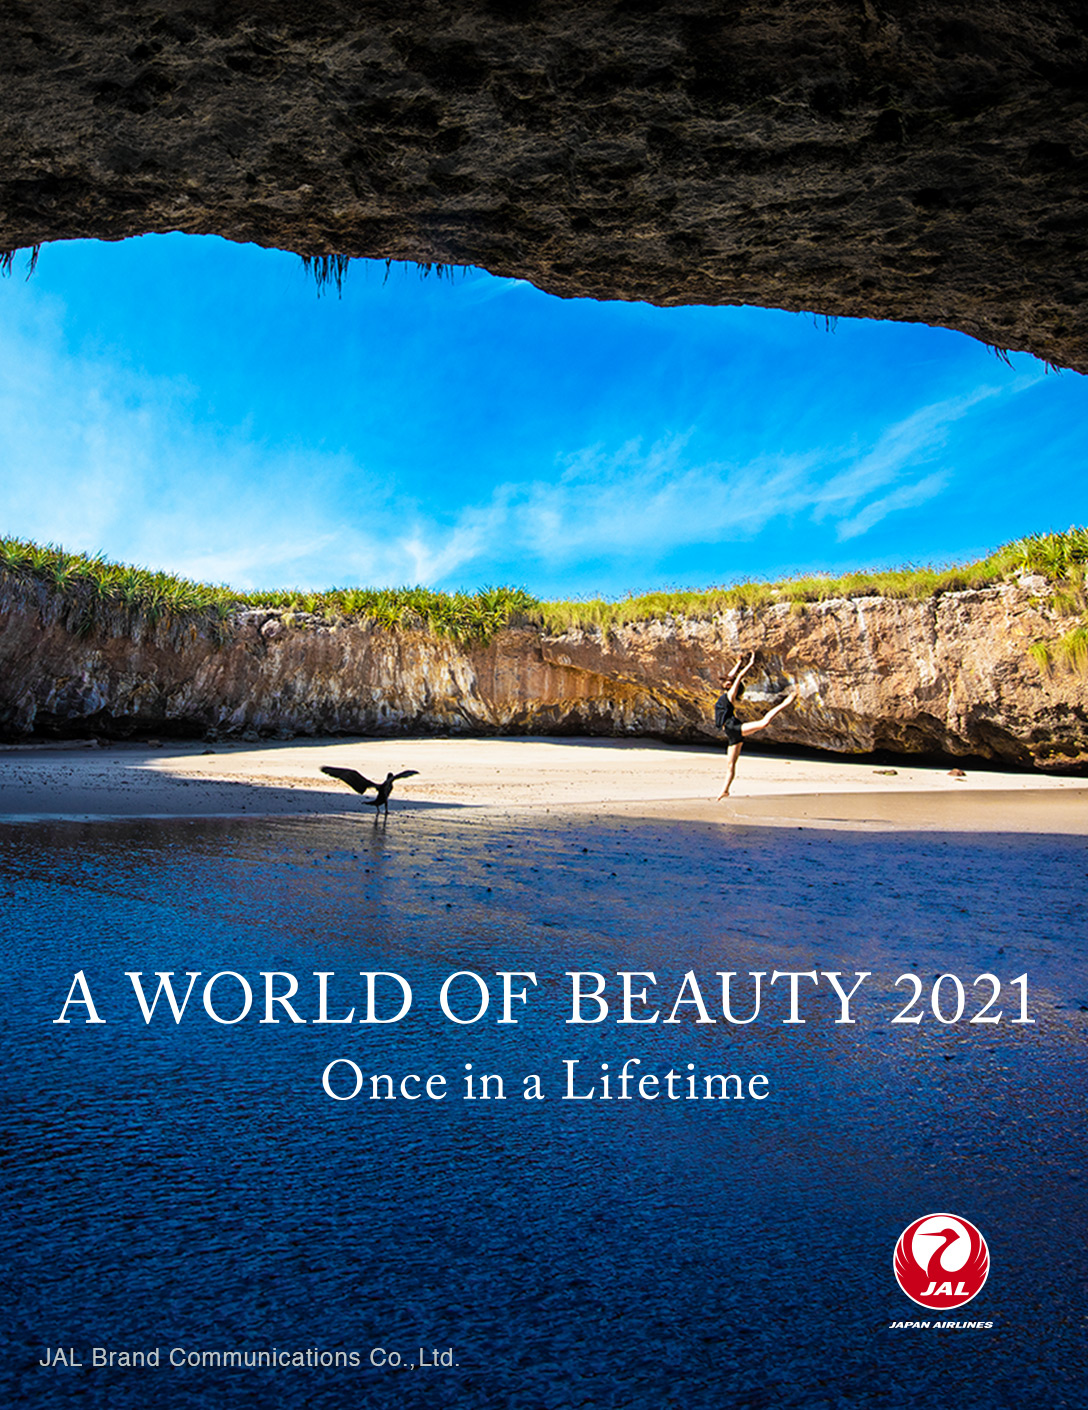 JALカレンダー『A WORLD OF BEAUTY 2021』